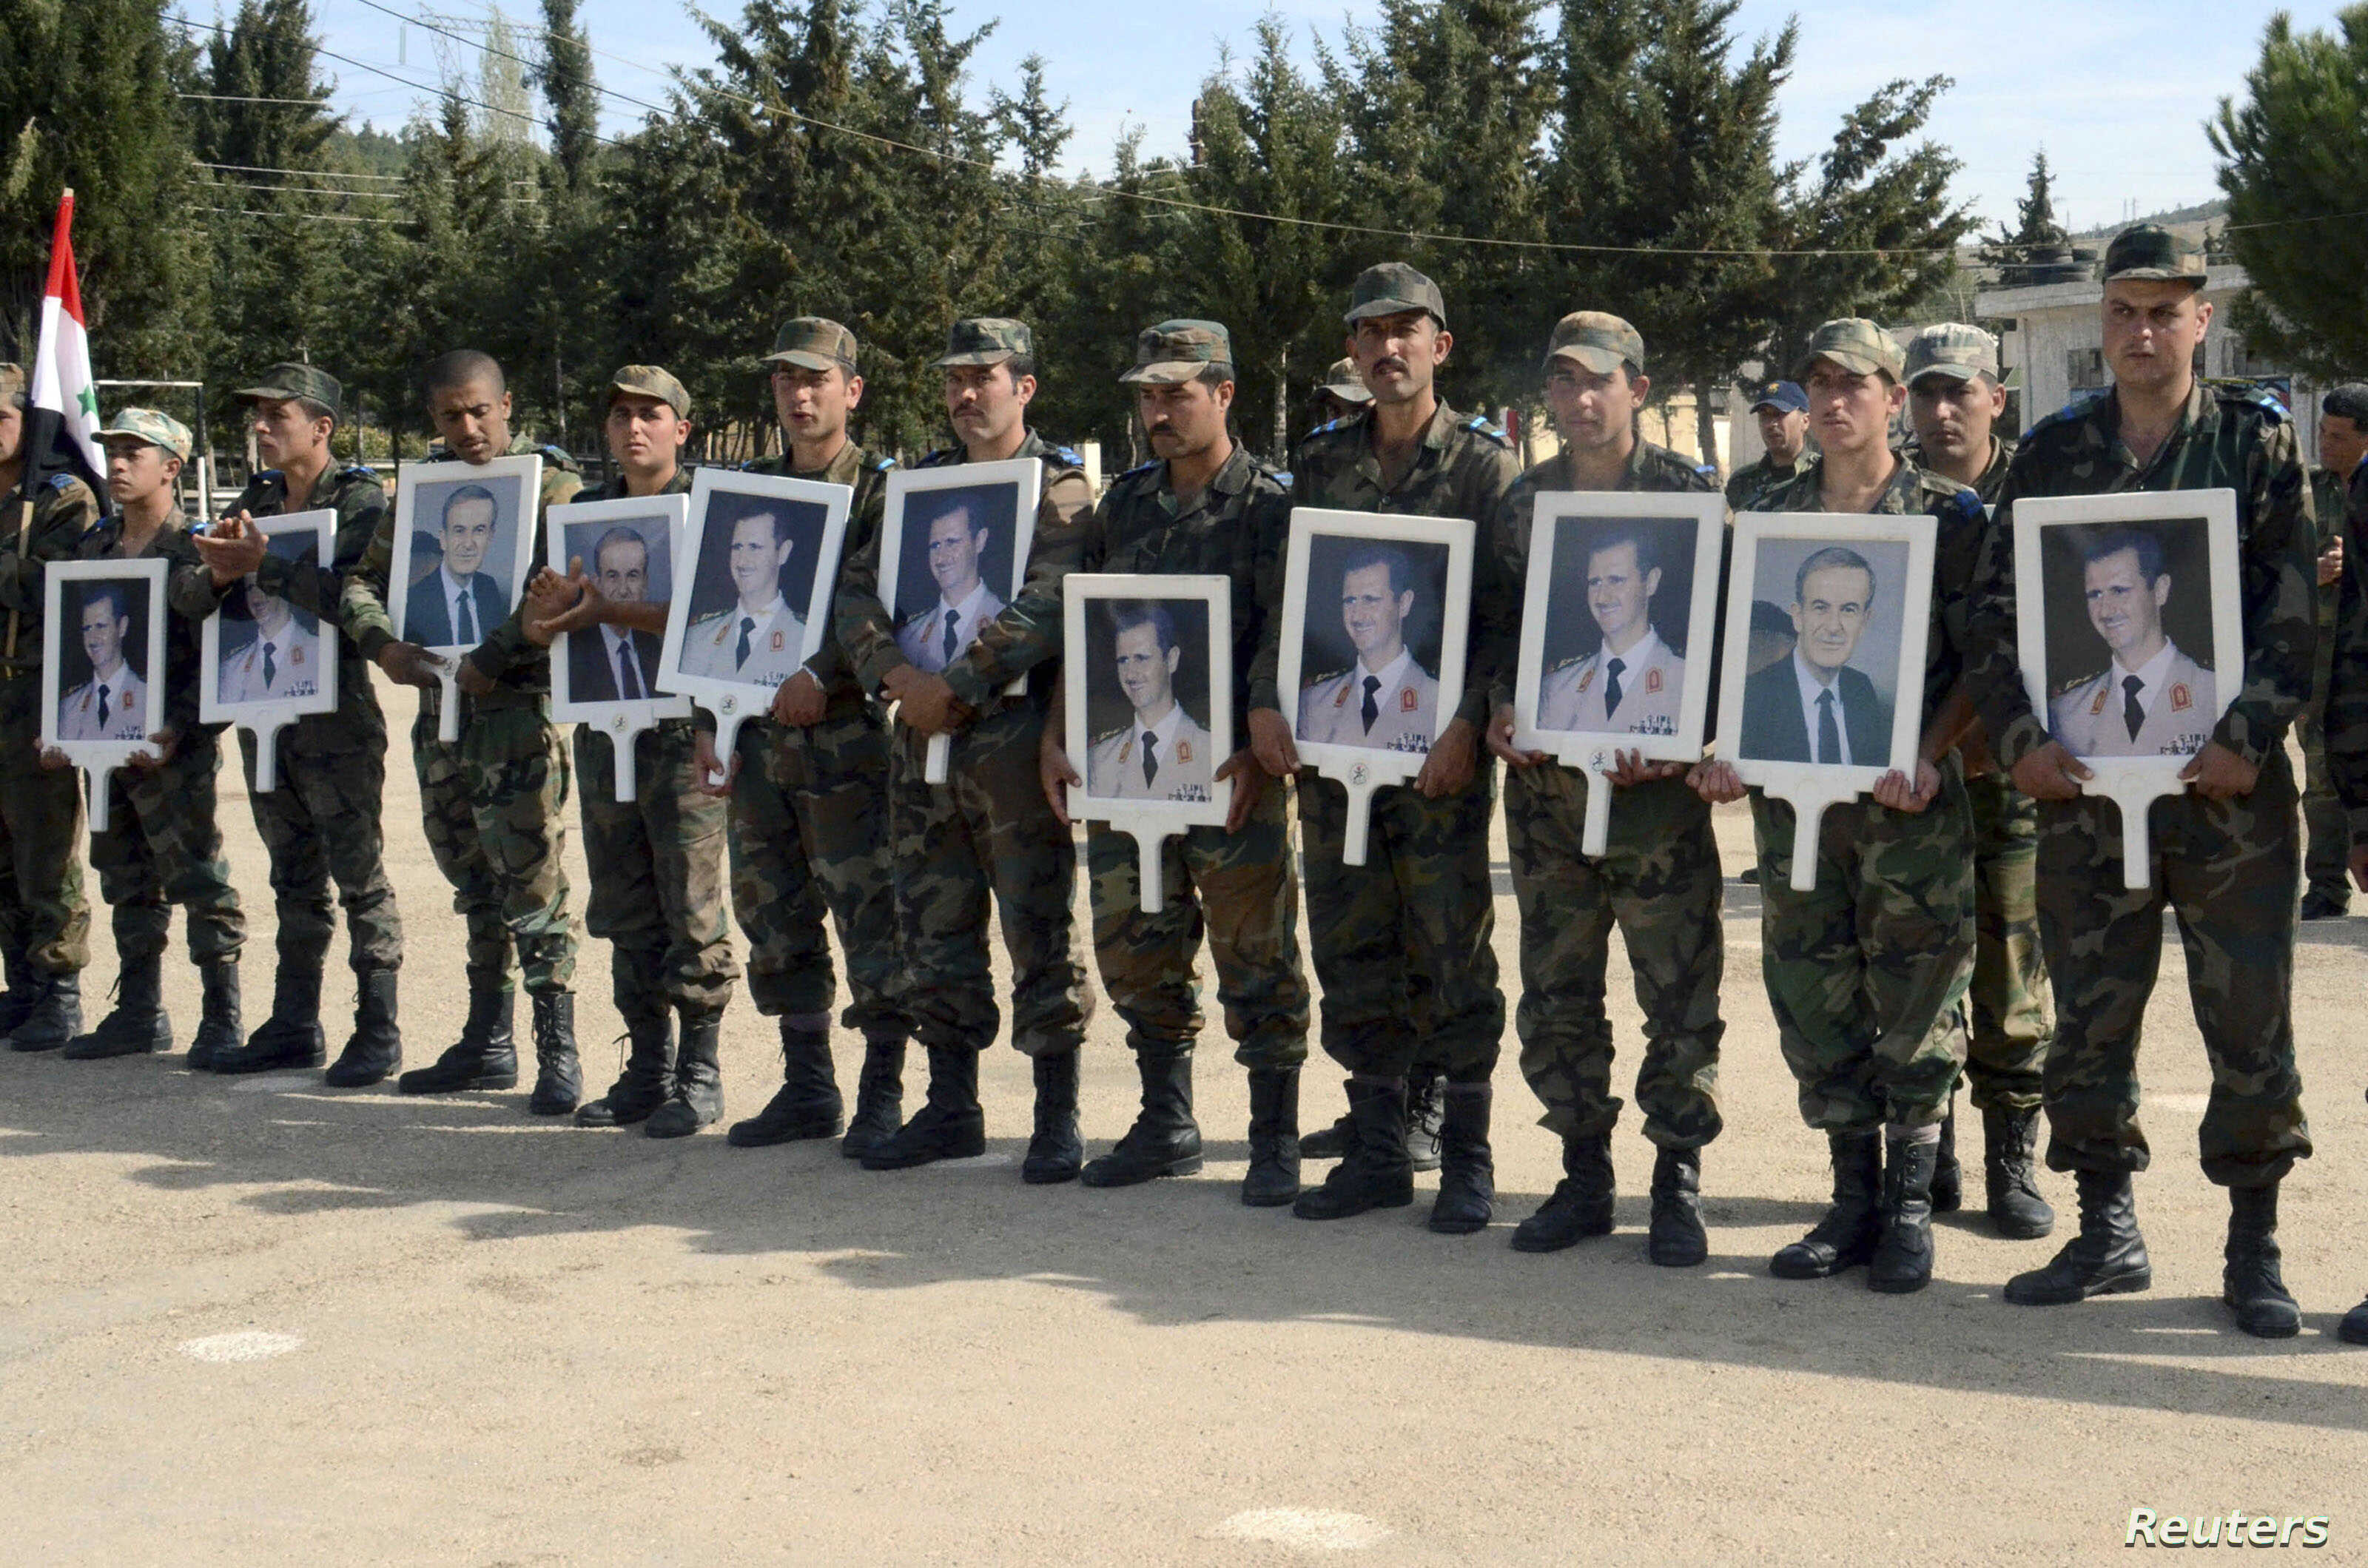 Forces loyal to Syria's President Bashar al-Assad carry pictures of him and his late father, former Syrian president Hafez al-Assad, as they commemorate the 67th anniversary of the founding of the Baath party, at an undisclosed location, in this hand...